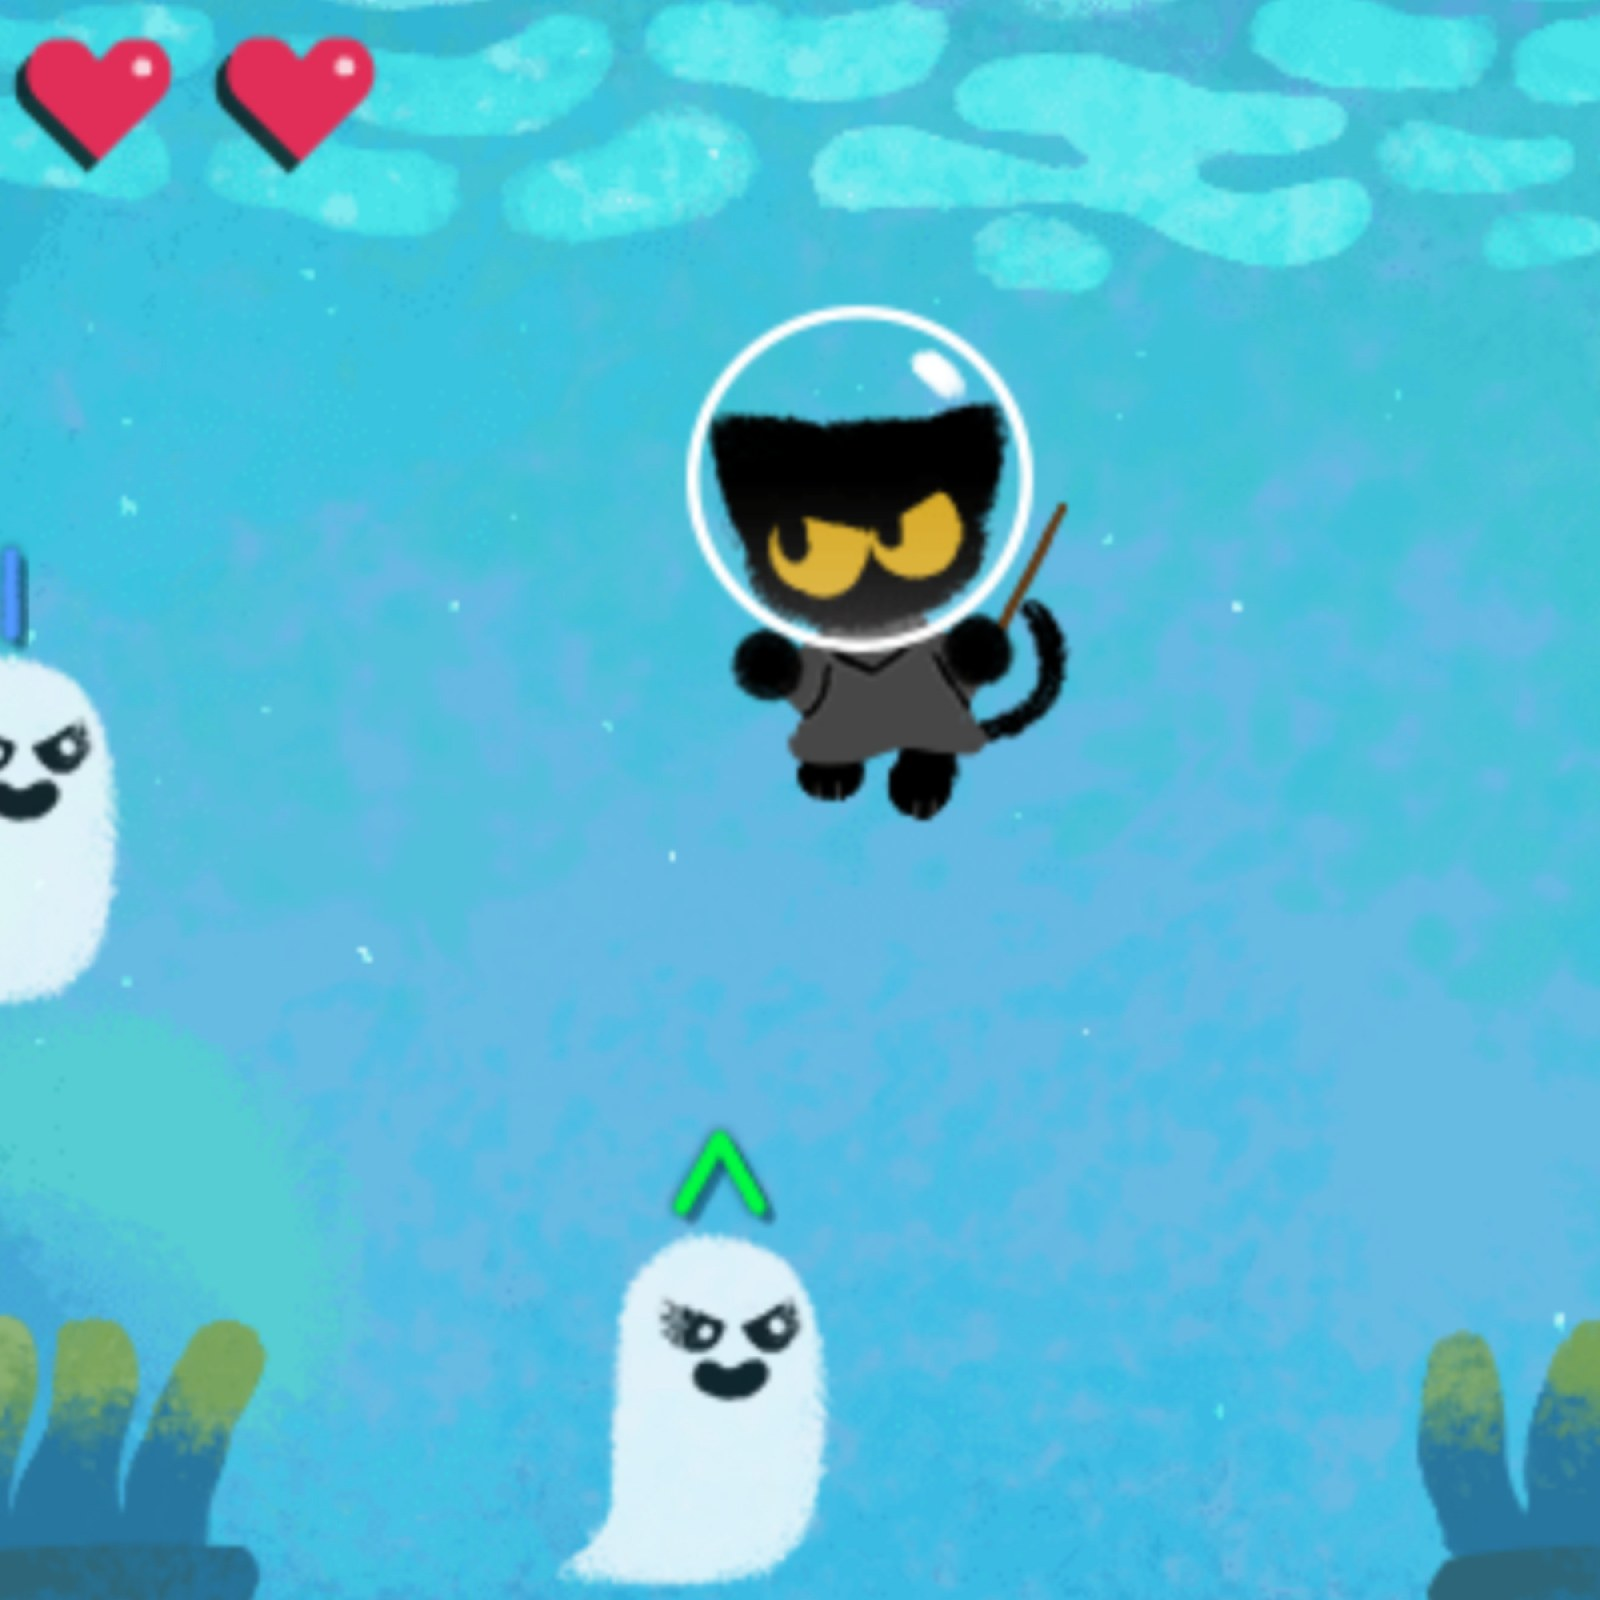 halloween google doodle brings back momo for new magic cat academy game magic cat academy game